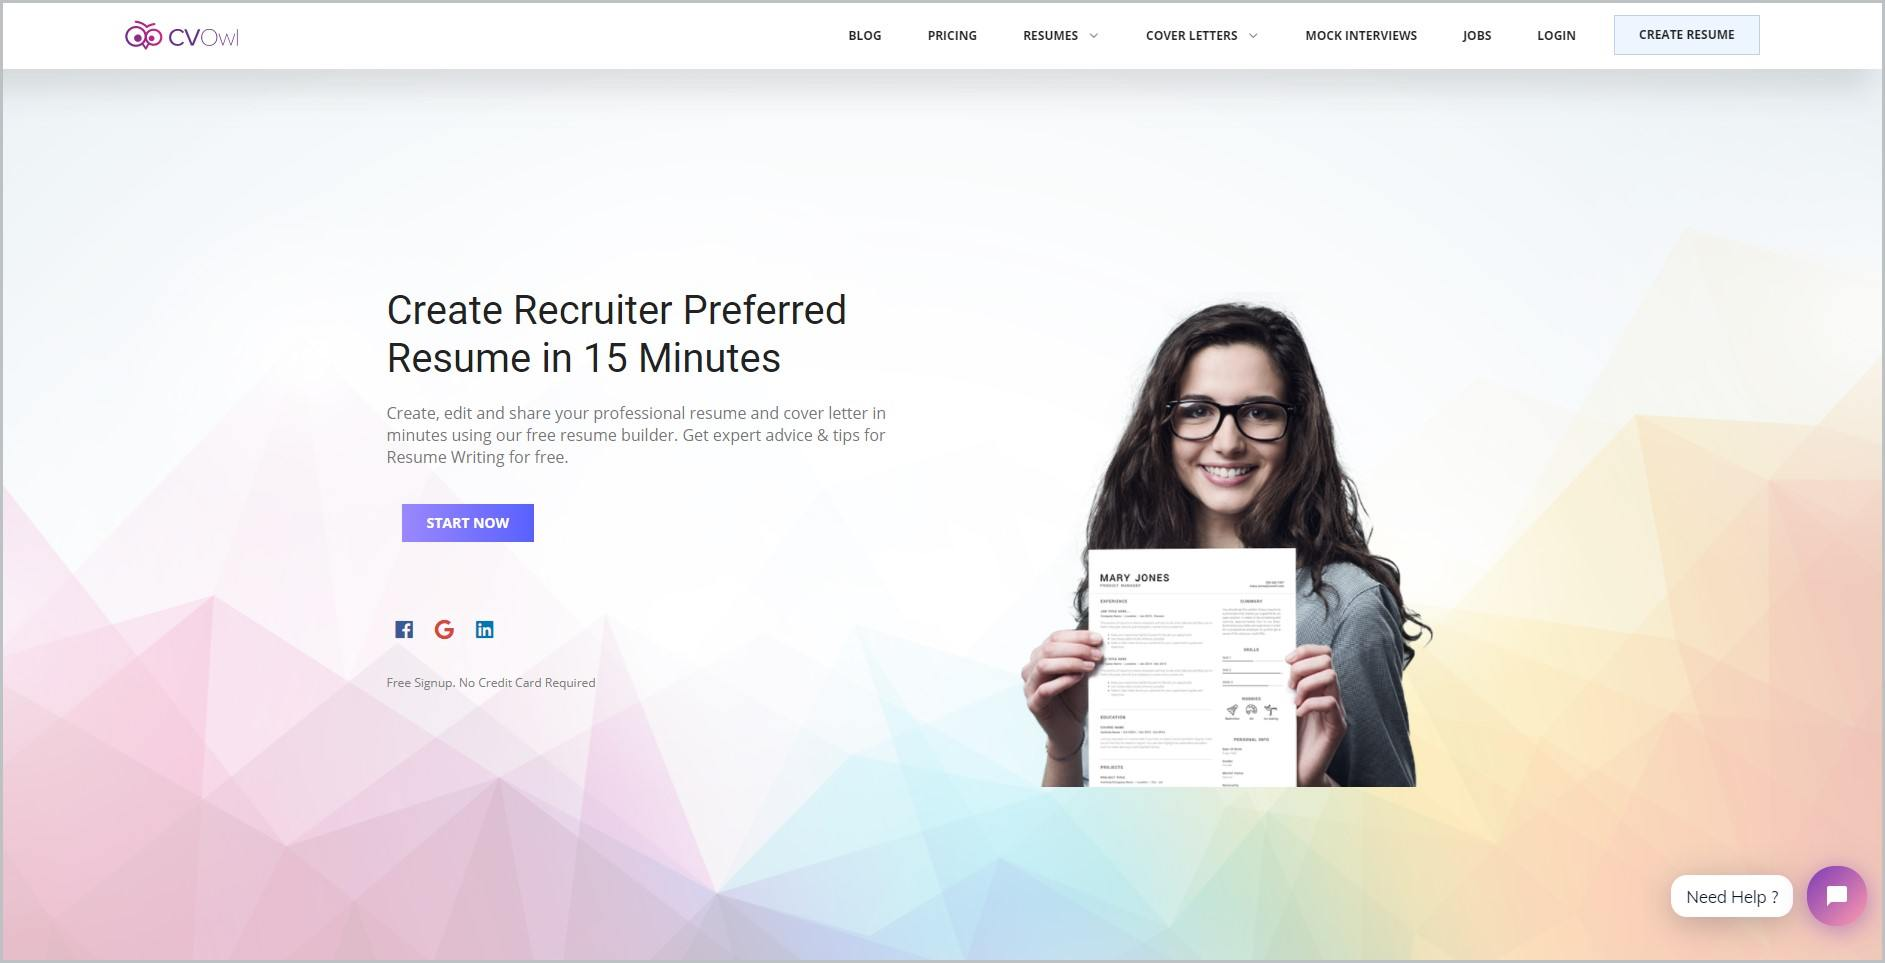 screenshot of CV Owl homepage with white header bearing the website's name and main navigation menu, it showcases an image of a smiling brunette with eyeglasses holding out a resume